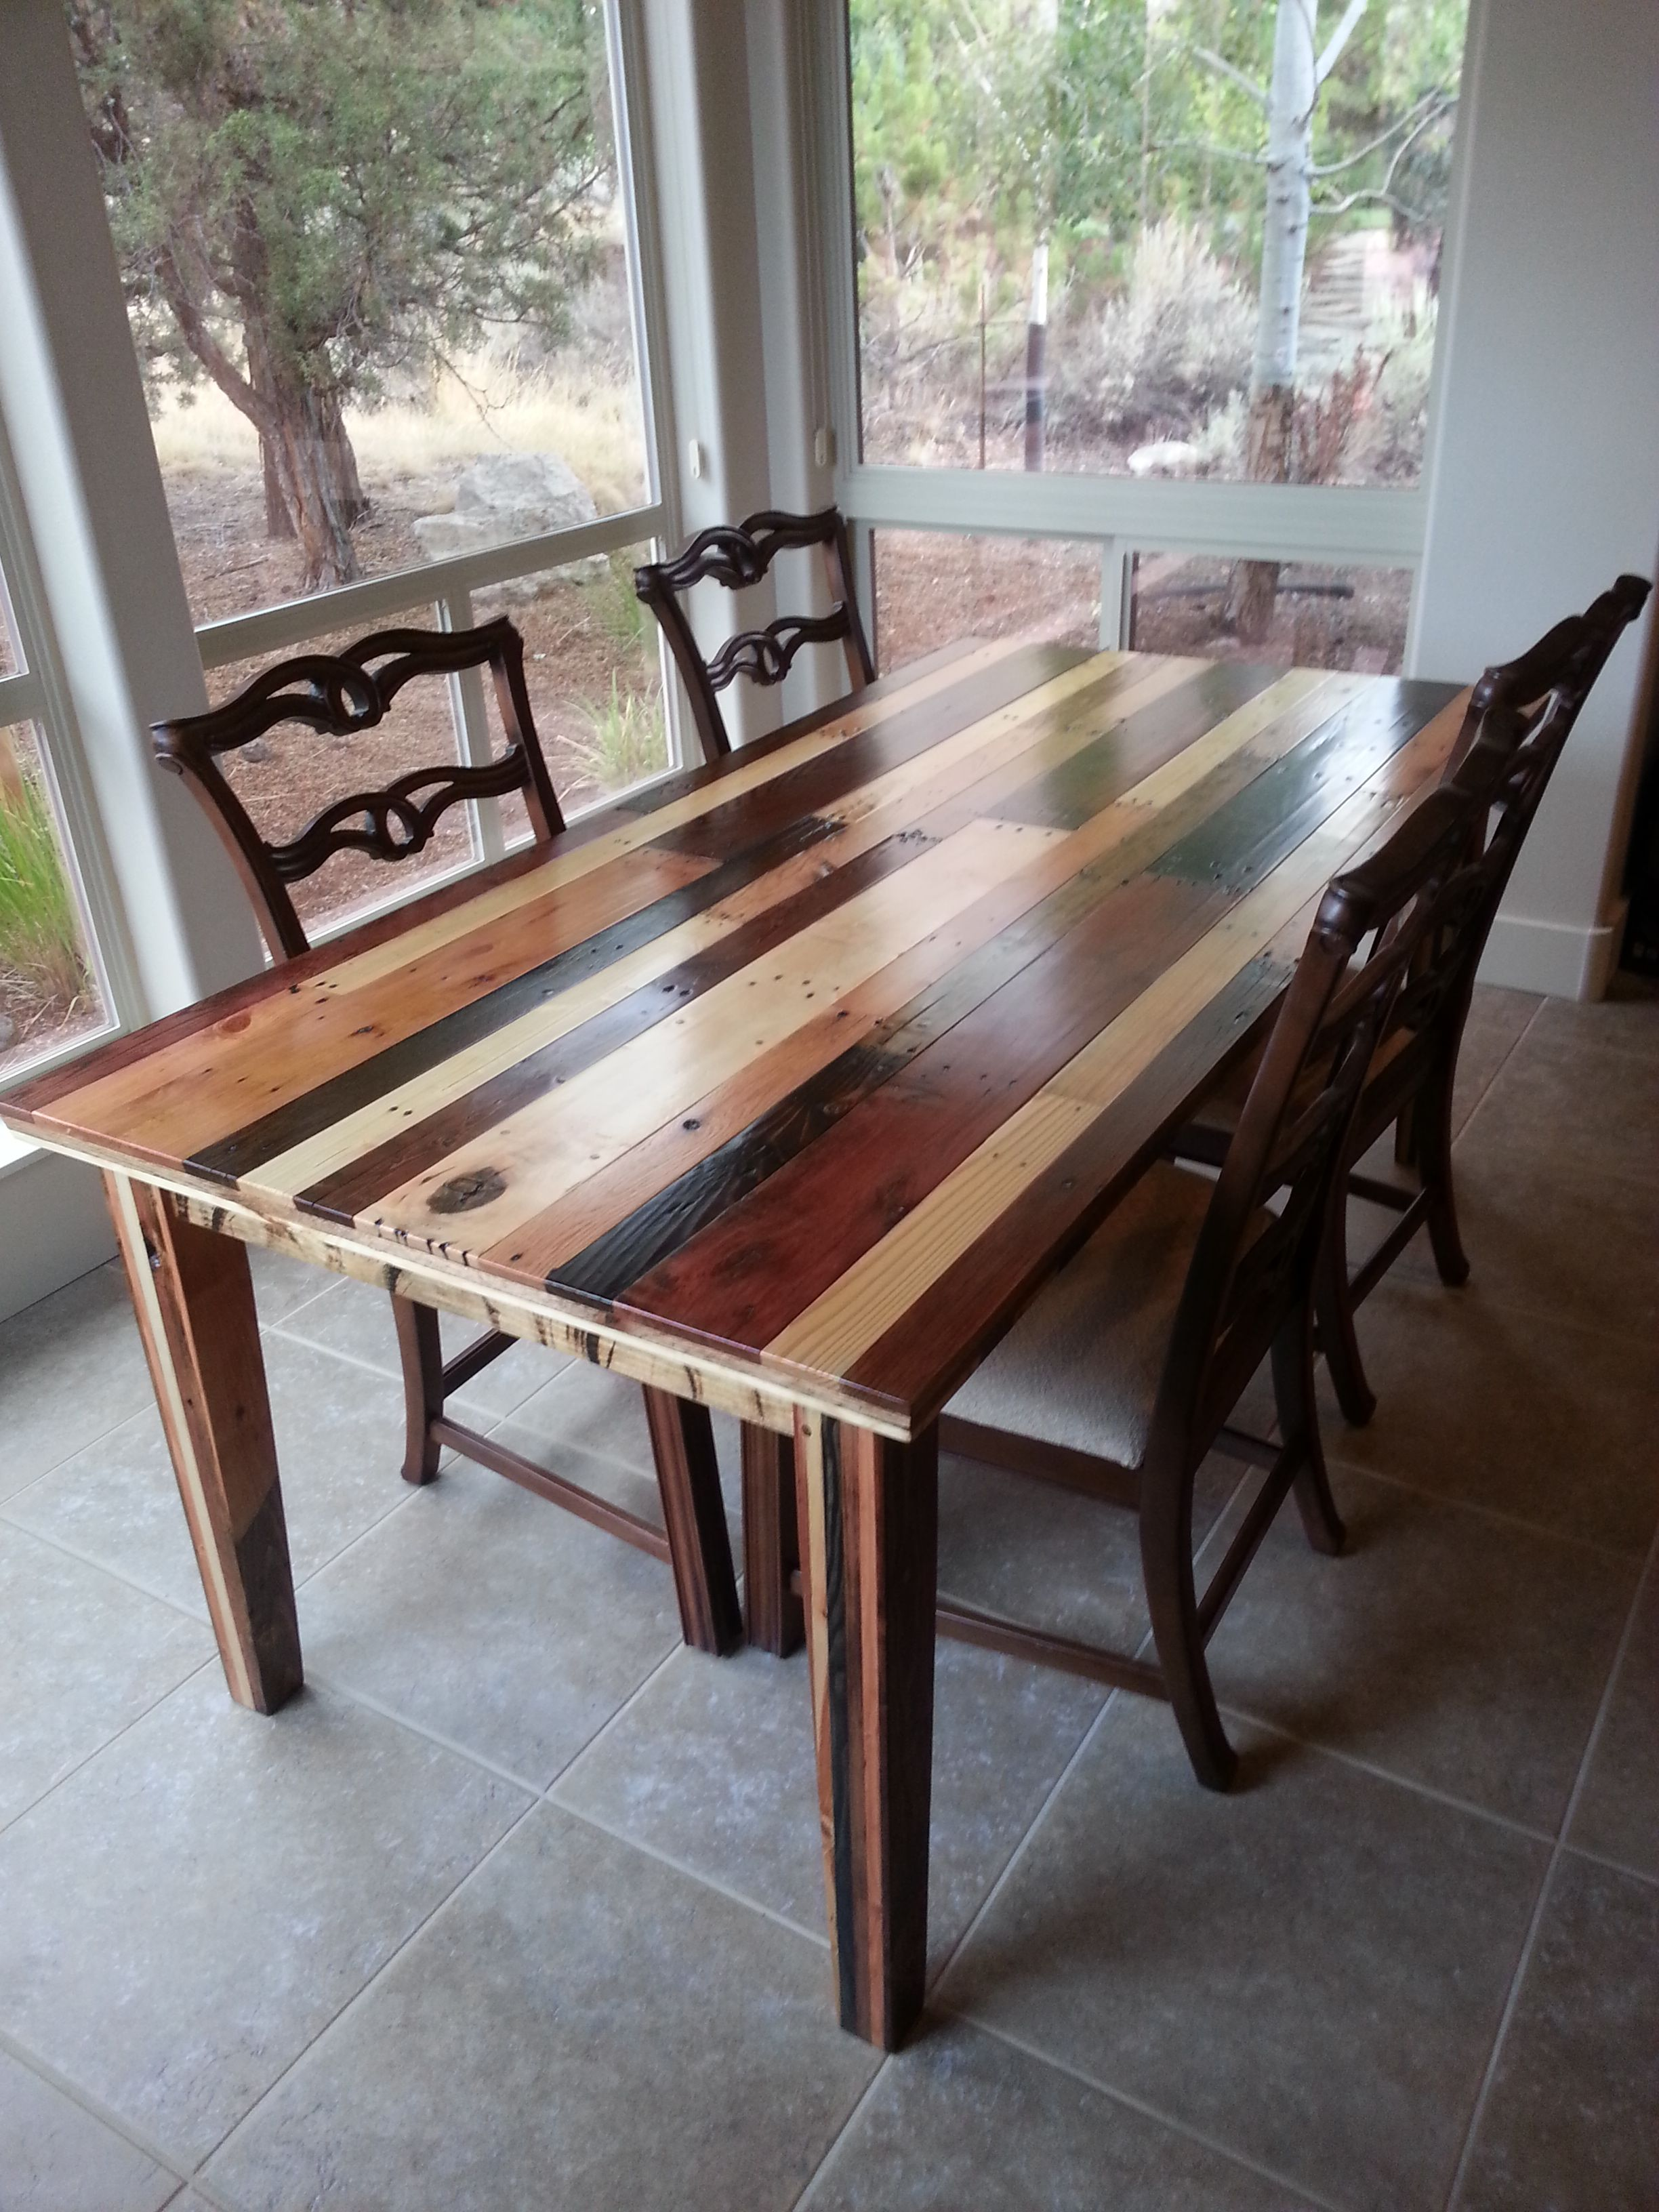 I Love This Table Made Out Of Pallet Wood Wood Pallet Projects